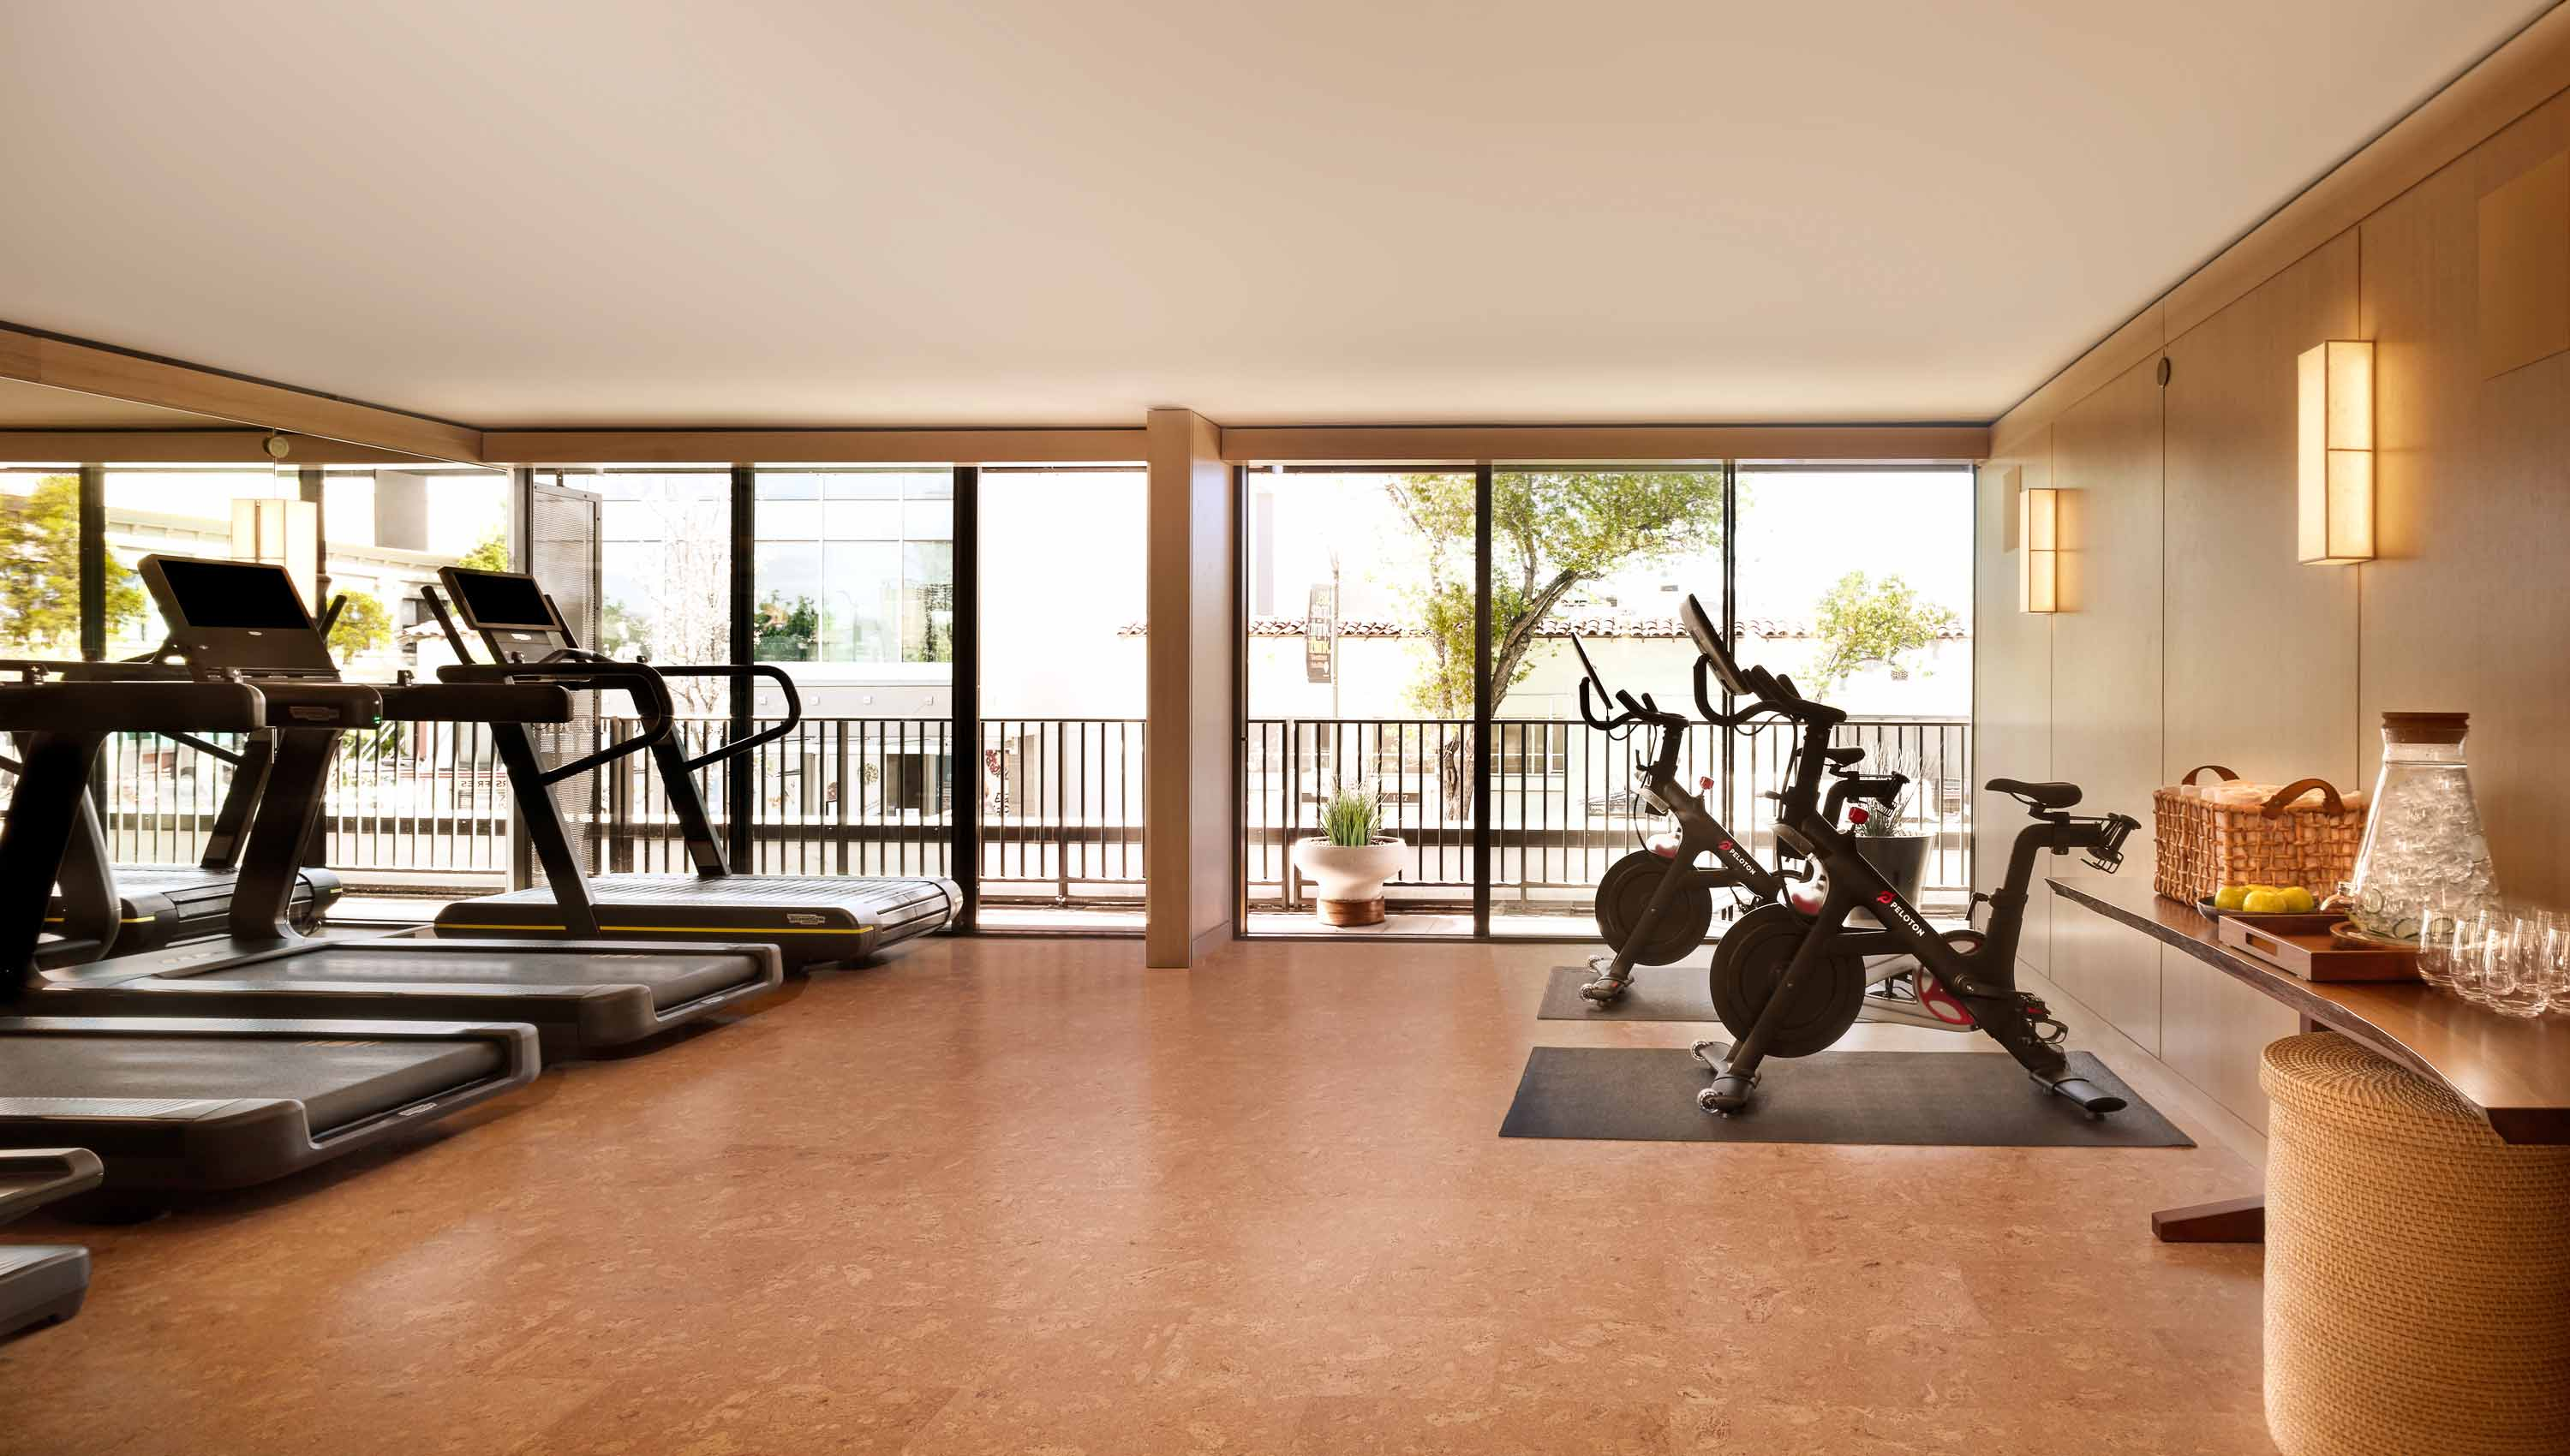 Fitness center with treadmills and stationary bikes